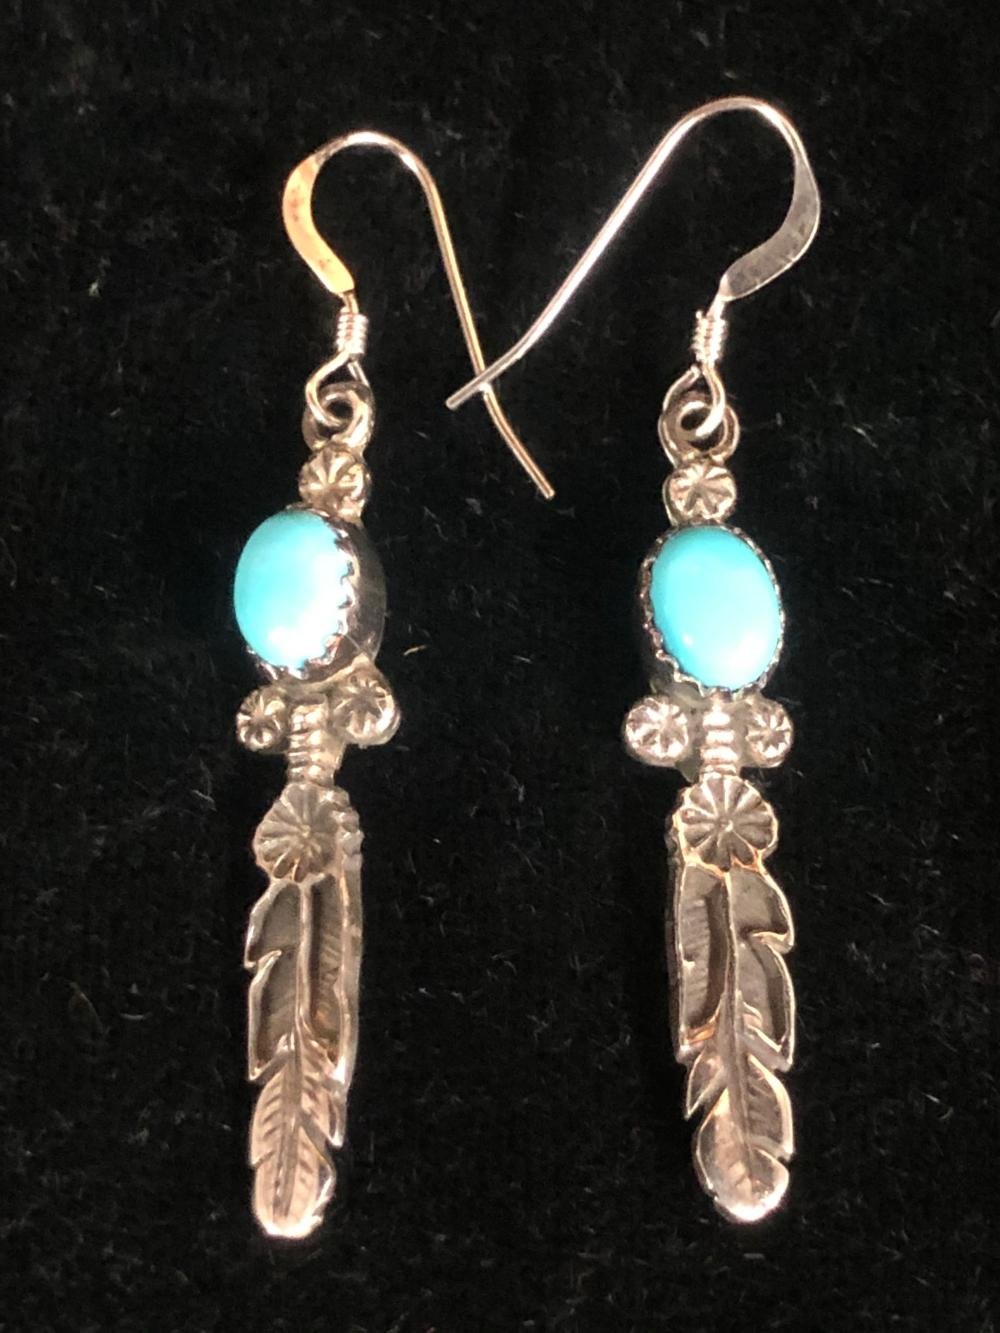 Feather with turquoise stones sterling silver earrings